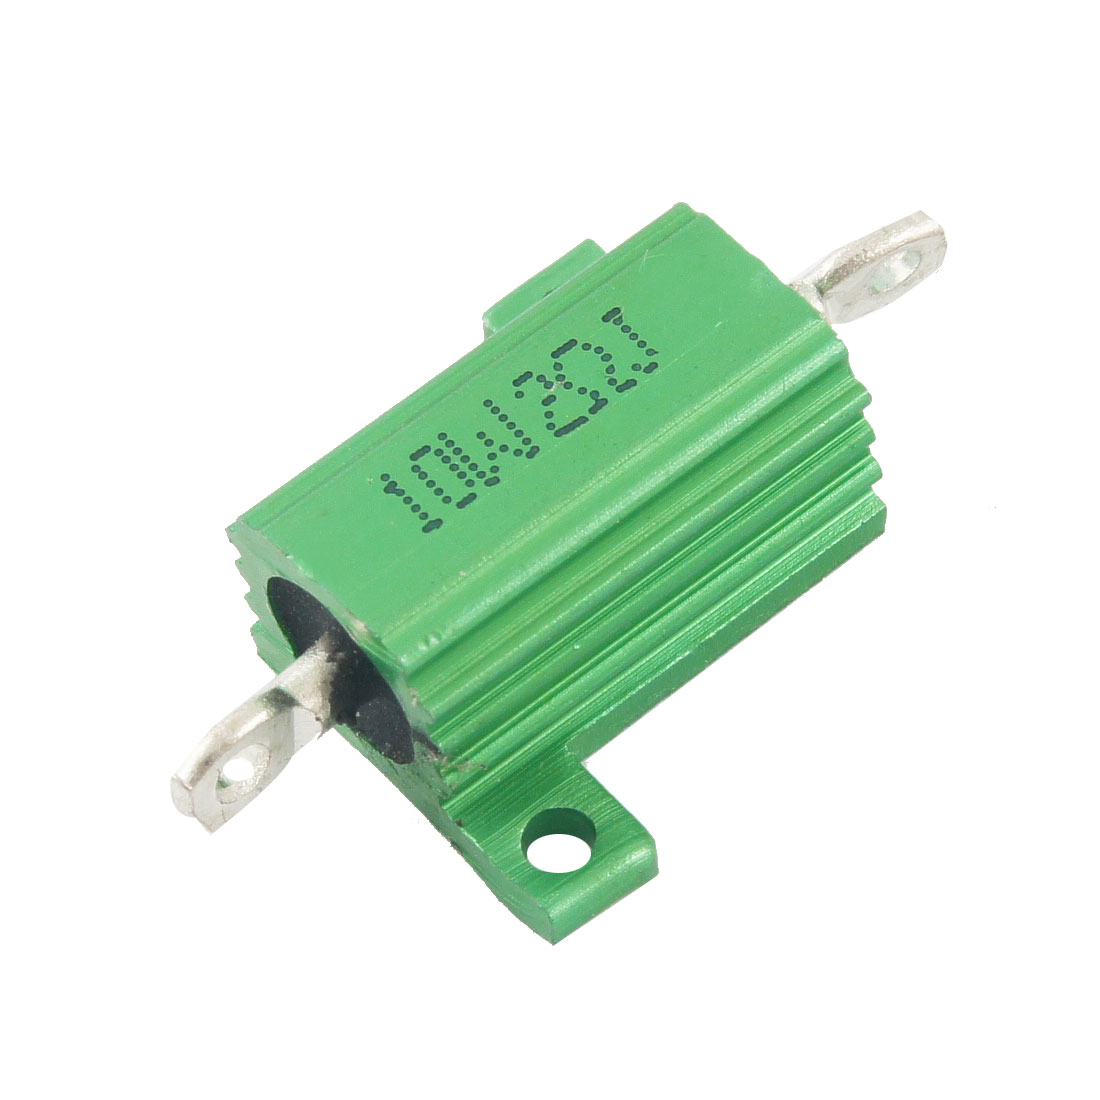 Green 10 Watt 2 Ohm 5% Aluminum Shell Wire Wound Resistor